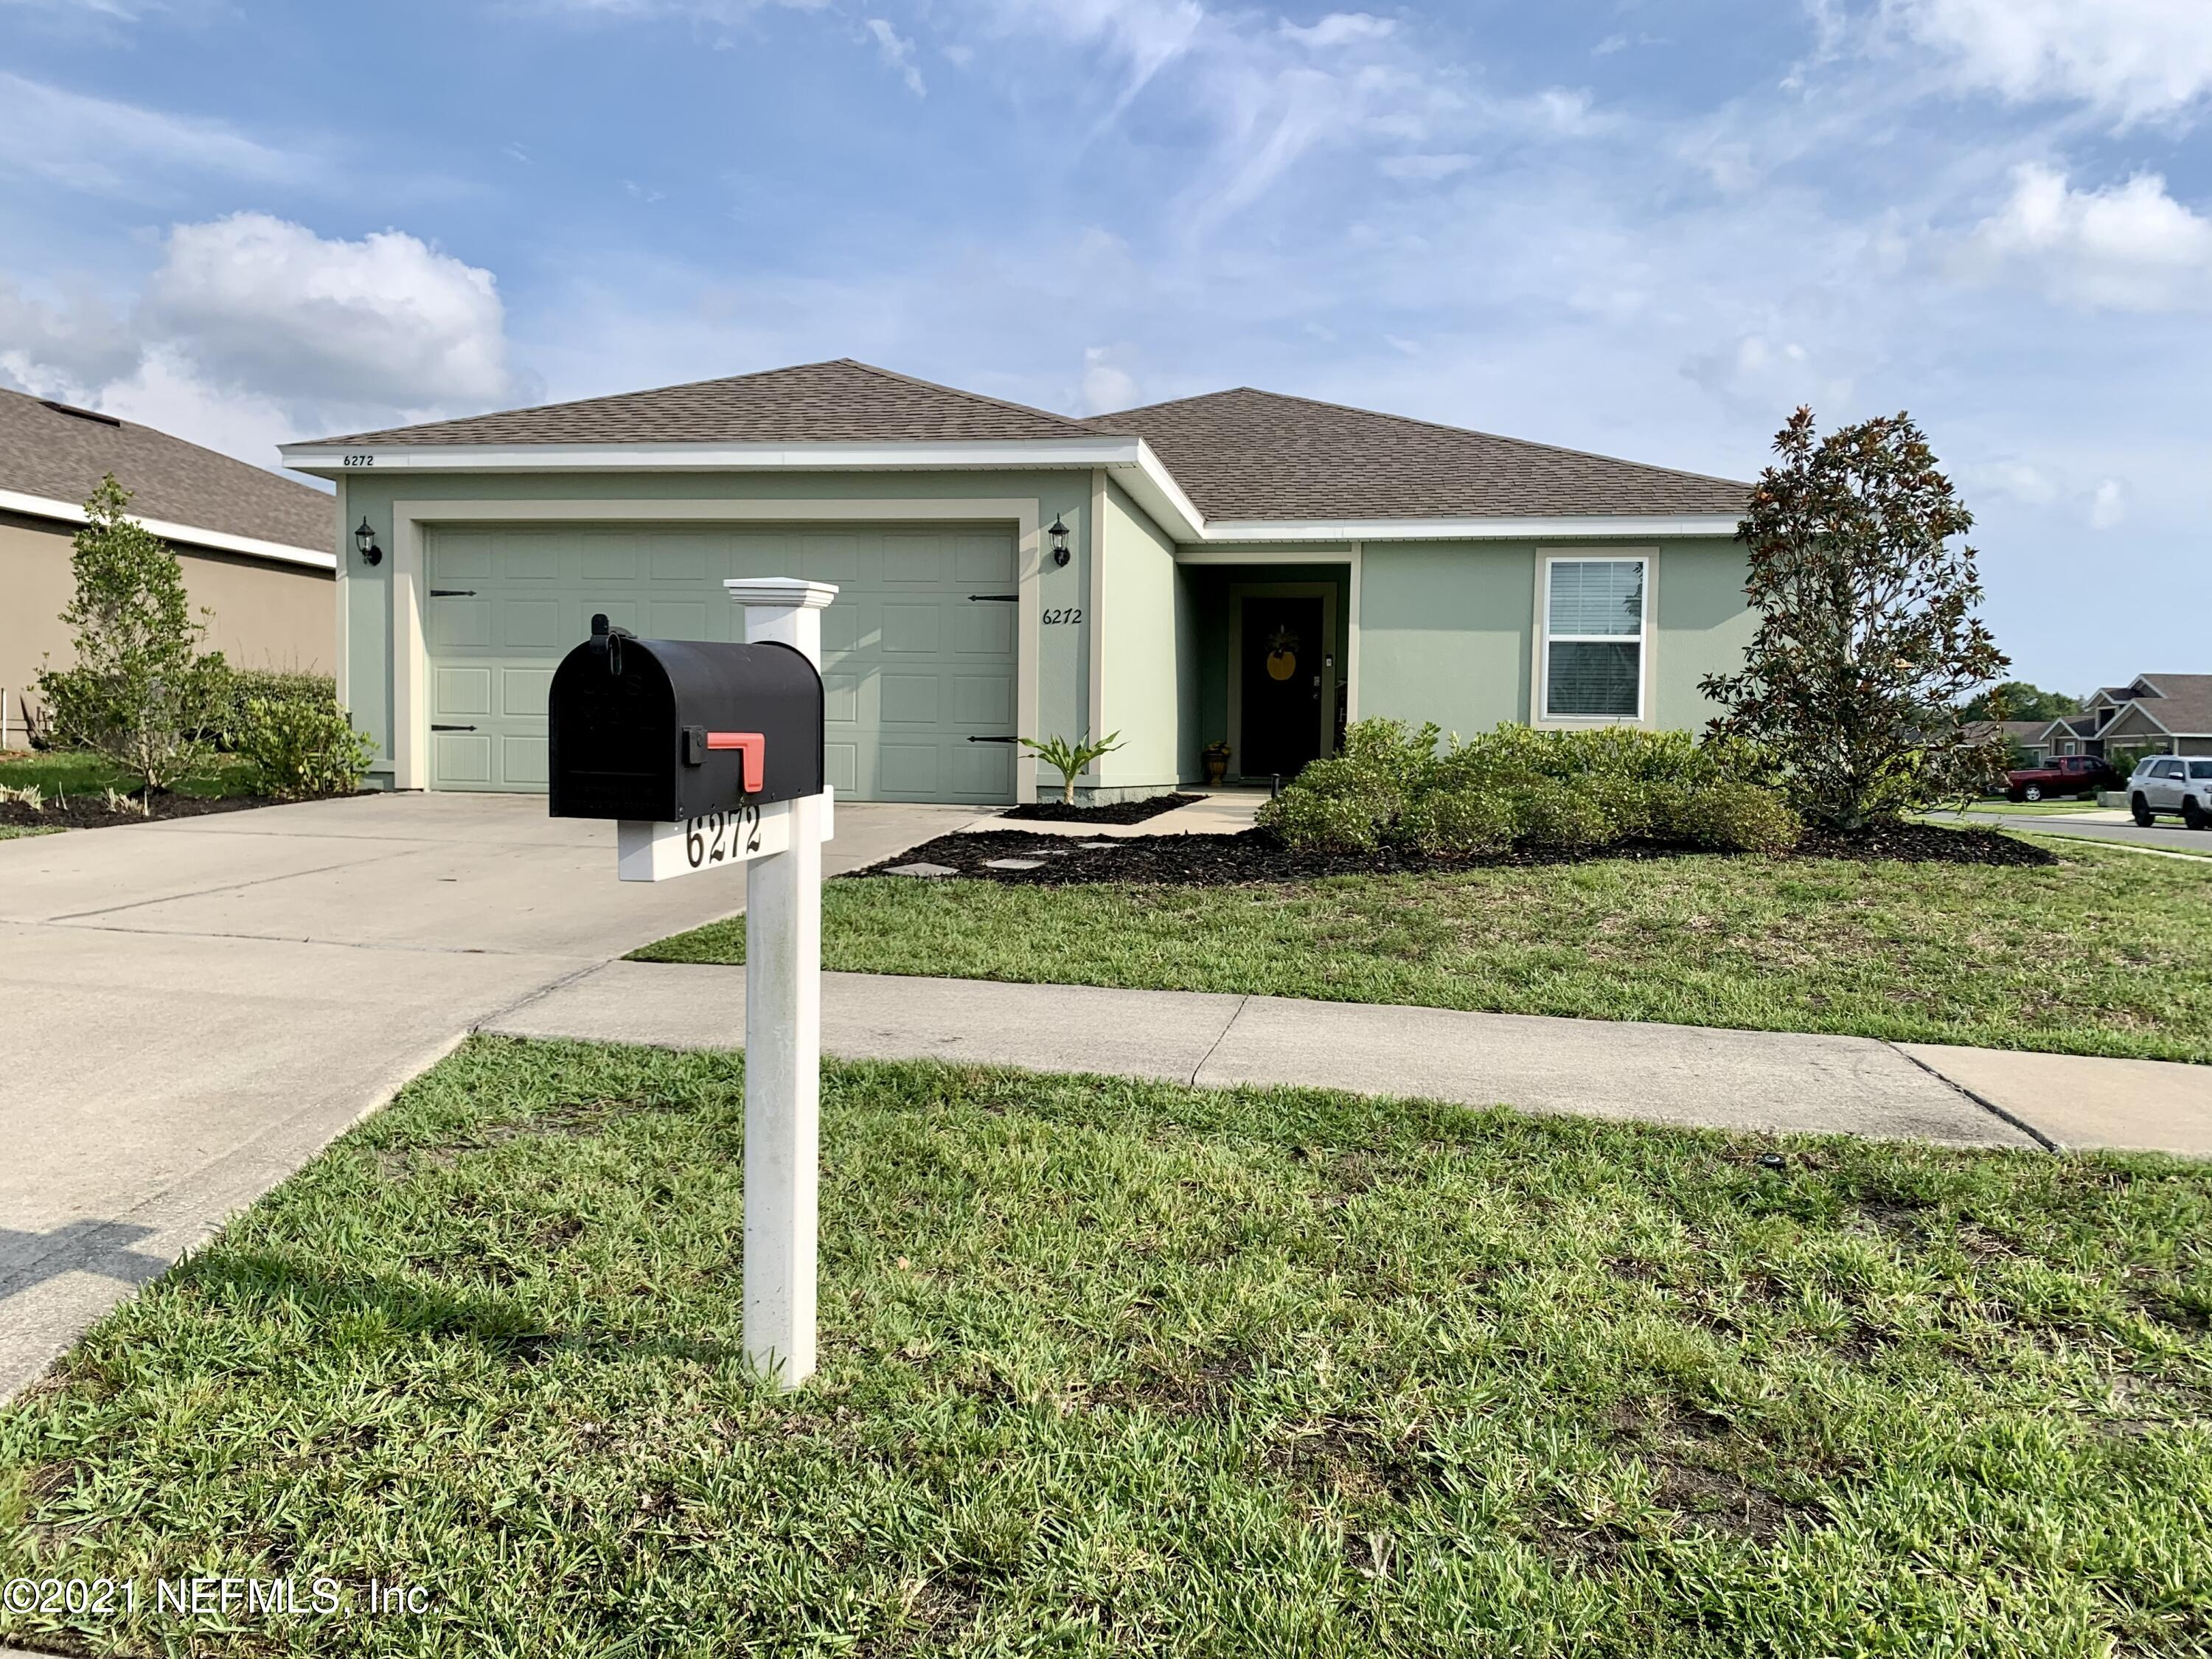 Details for 6272 Daylilly Rd, MACCLENNY, FL 32063